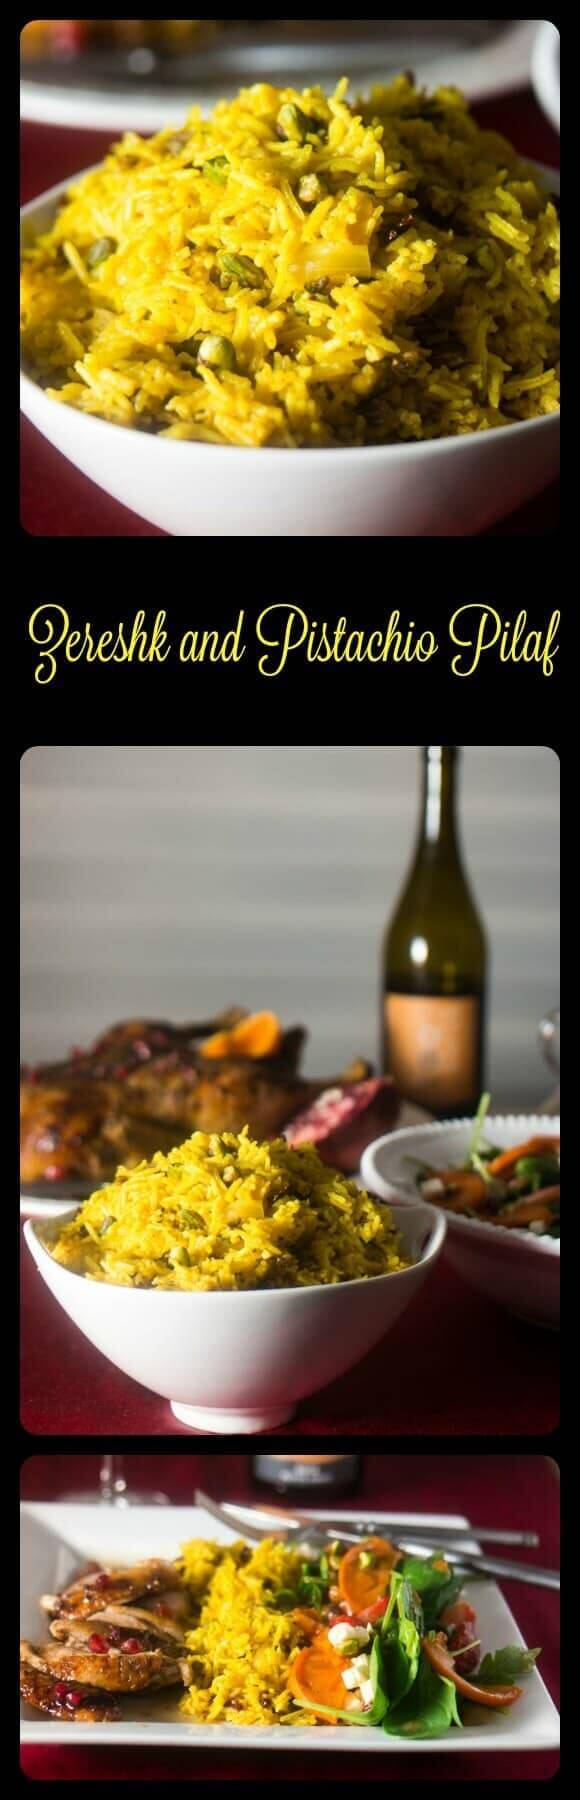 Zereshk and Pistachio Pilaf - Persian flavors sing in this delicious perhaps not authentic rice dish!